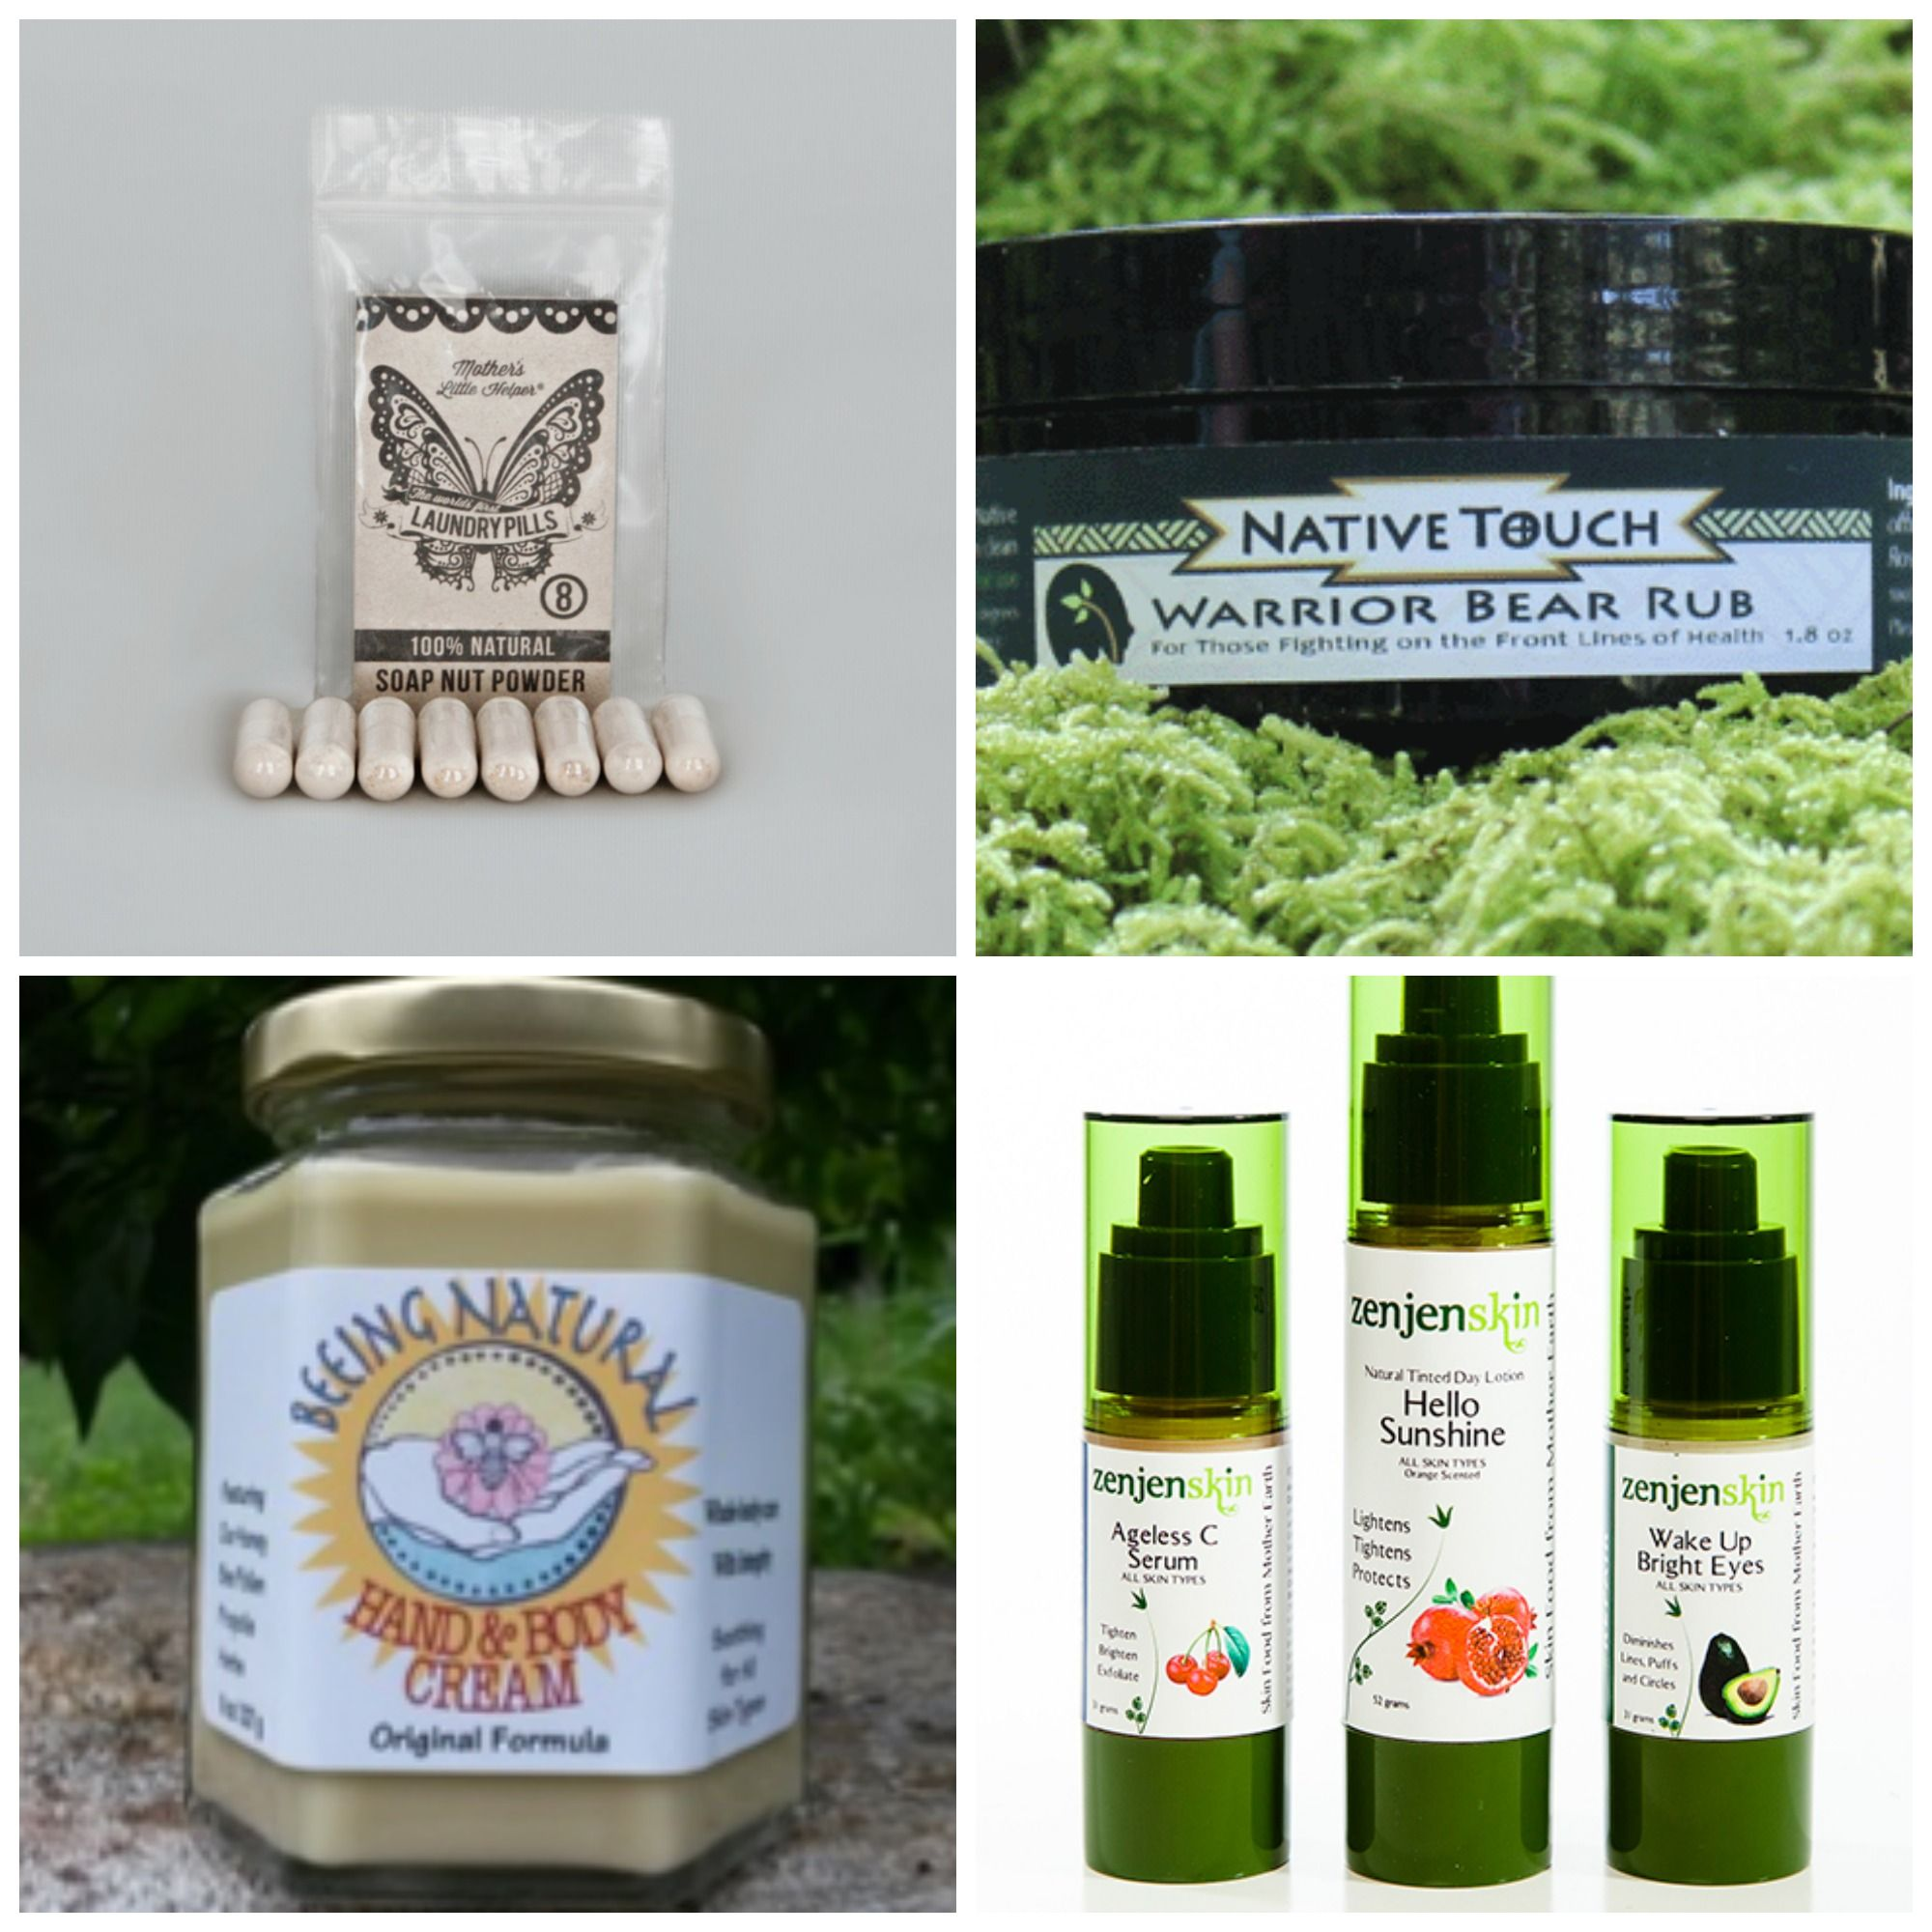 These are some of the products in our Healthy Skin Box! Get yours for just $49 while  supplies last http://www.nc-naturalproducts.org/site-page/blue-ridge-naturally-gift-boxes-2014